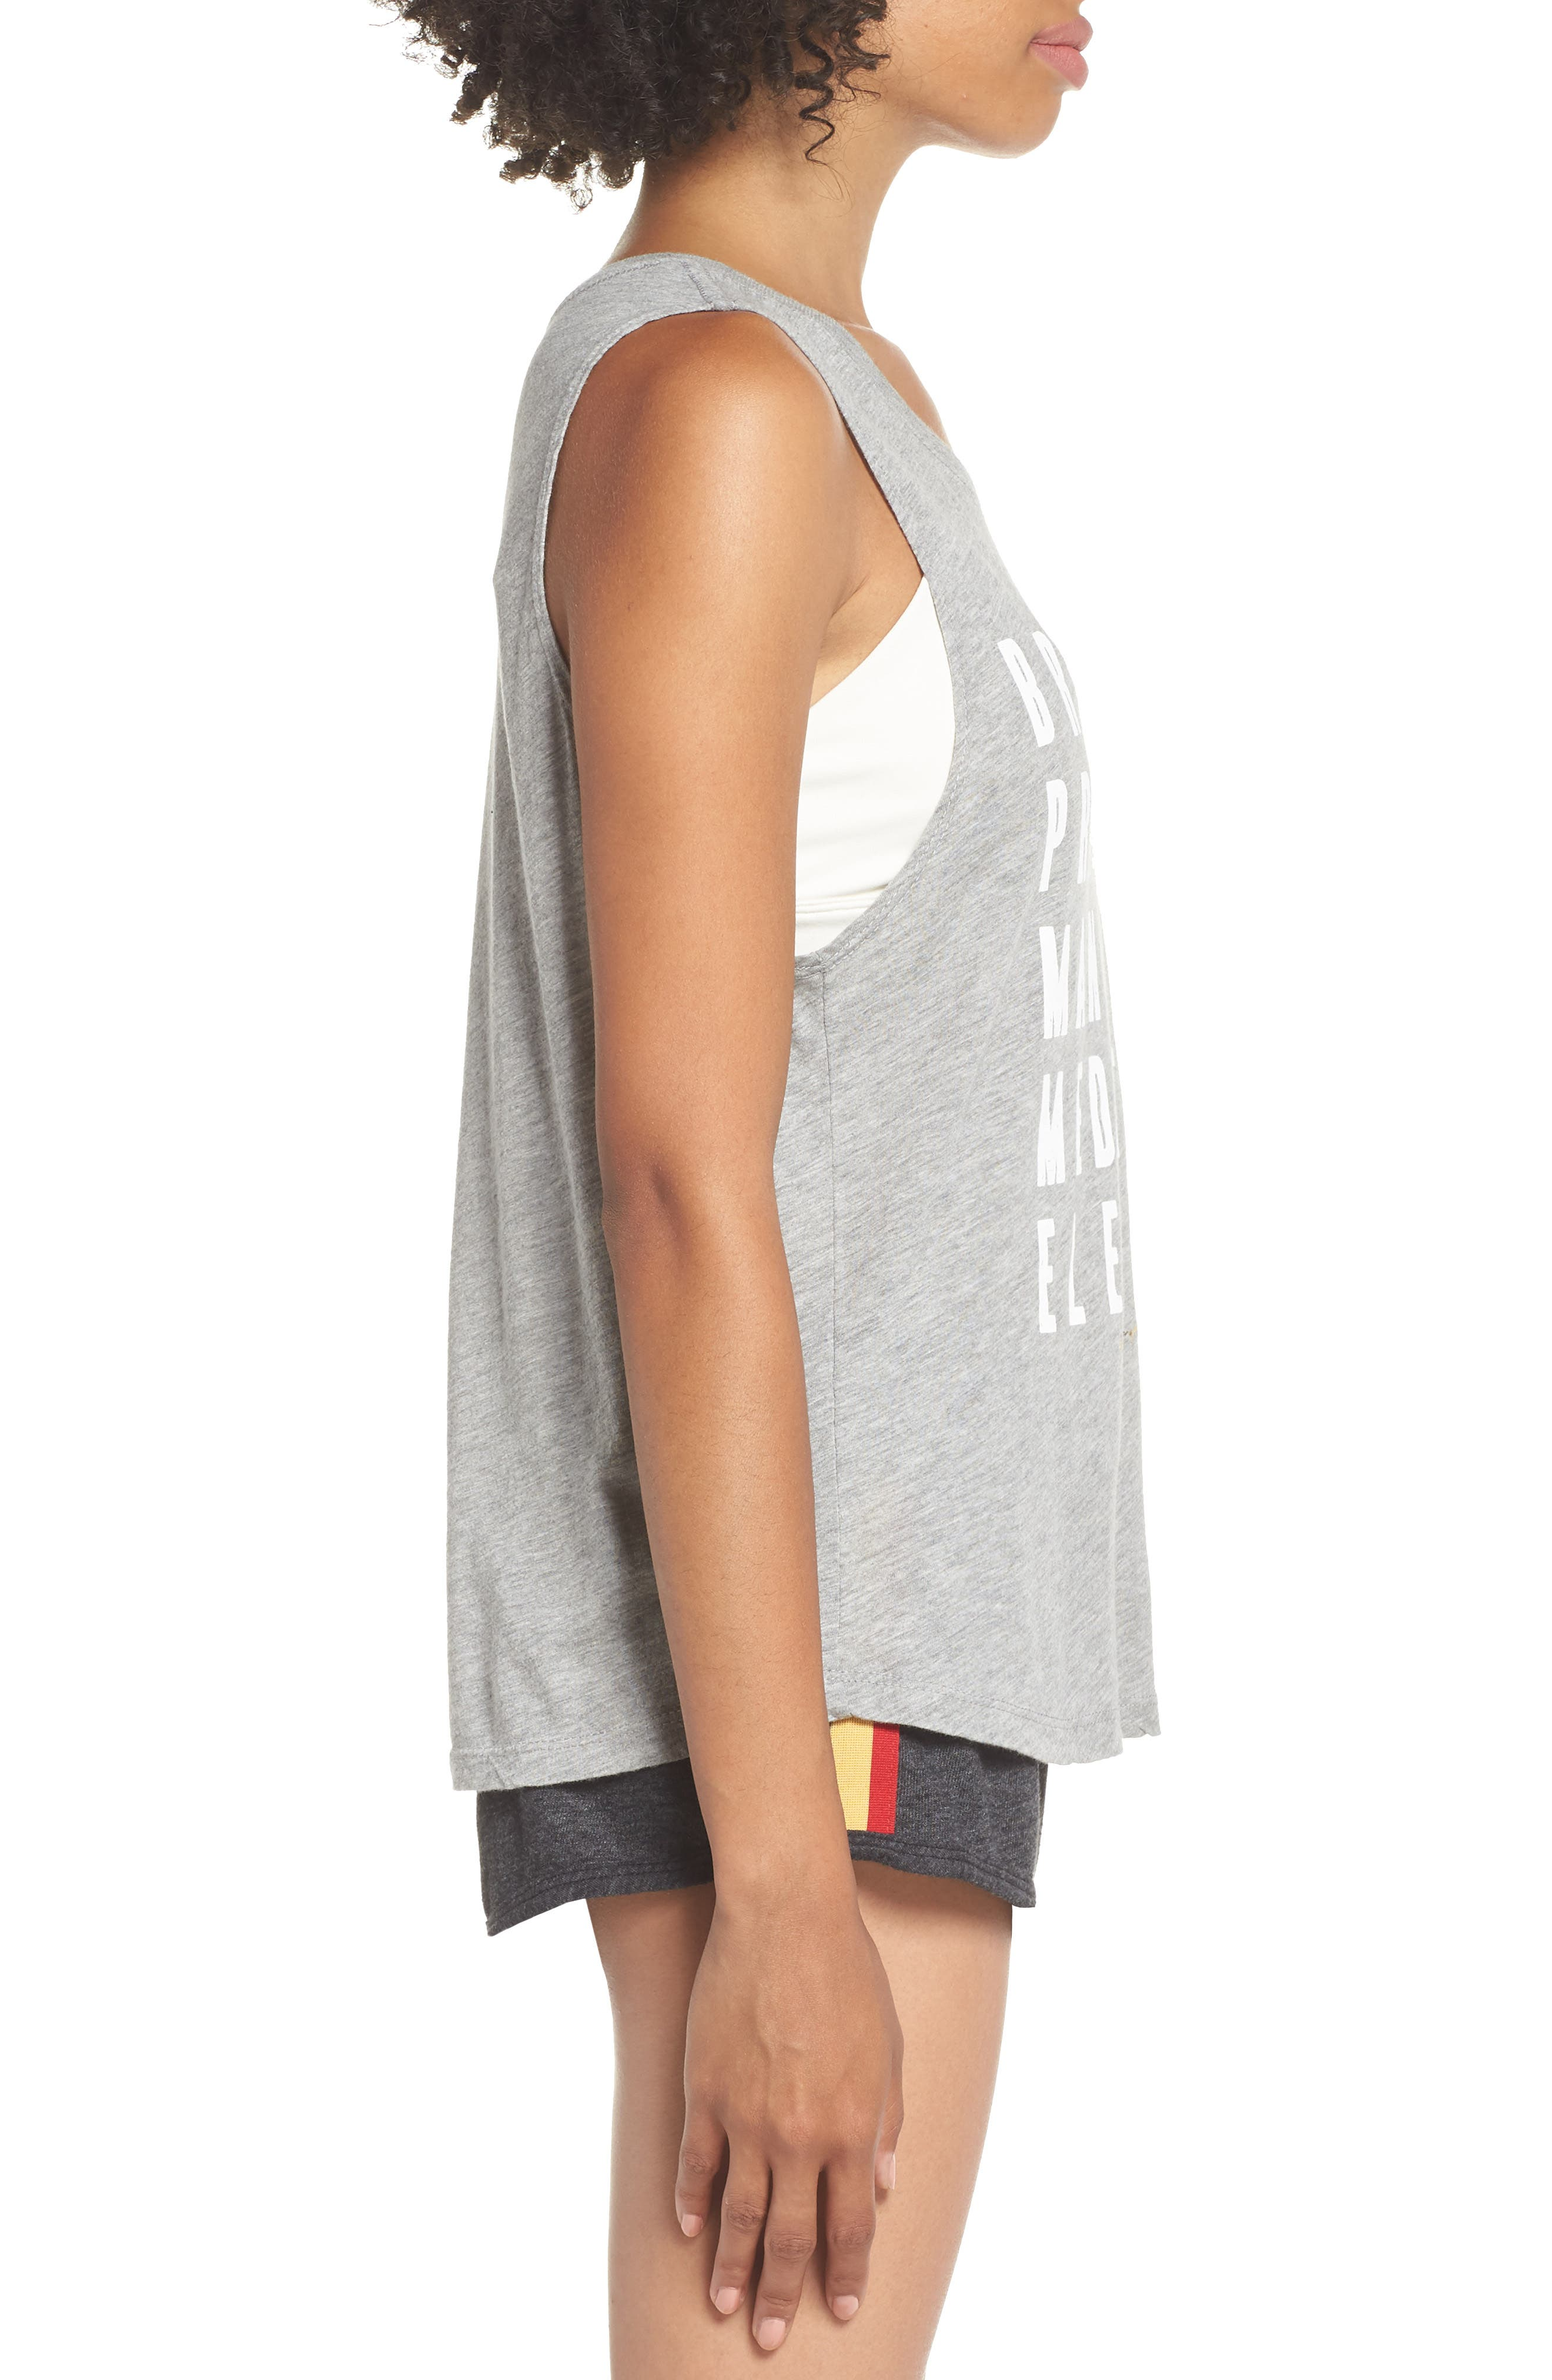 Proactive Muscle Tank Top,                             Alternate thumbnail 4, color,                             Hthr Grey